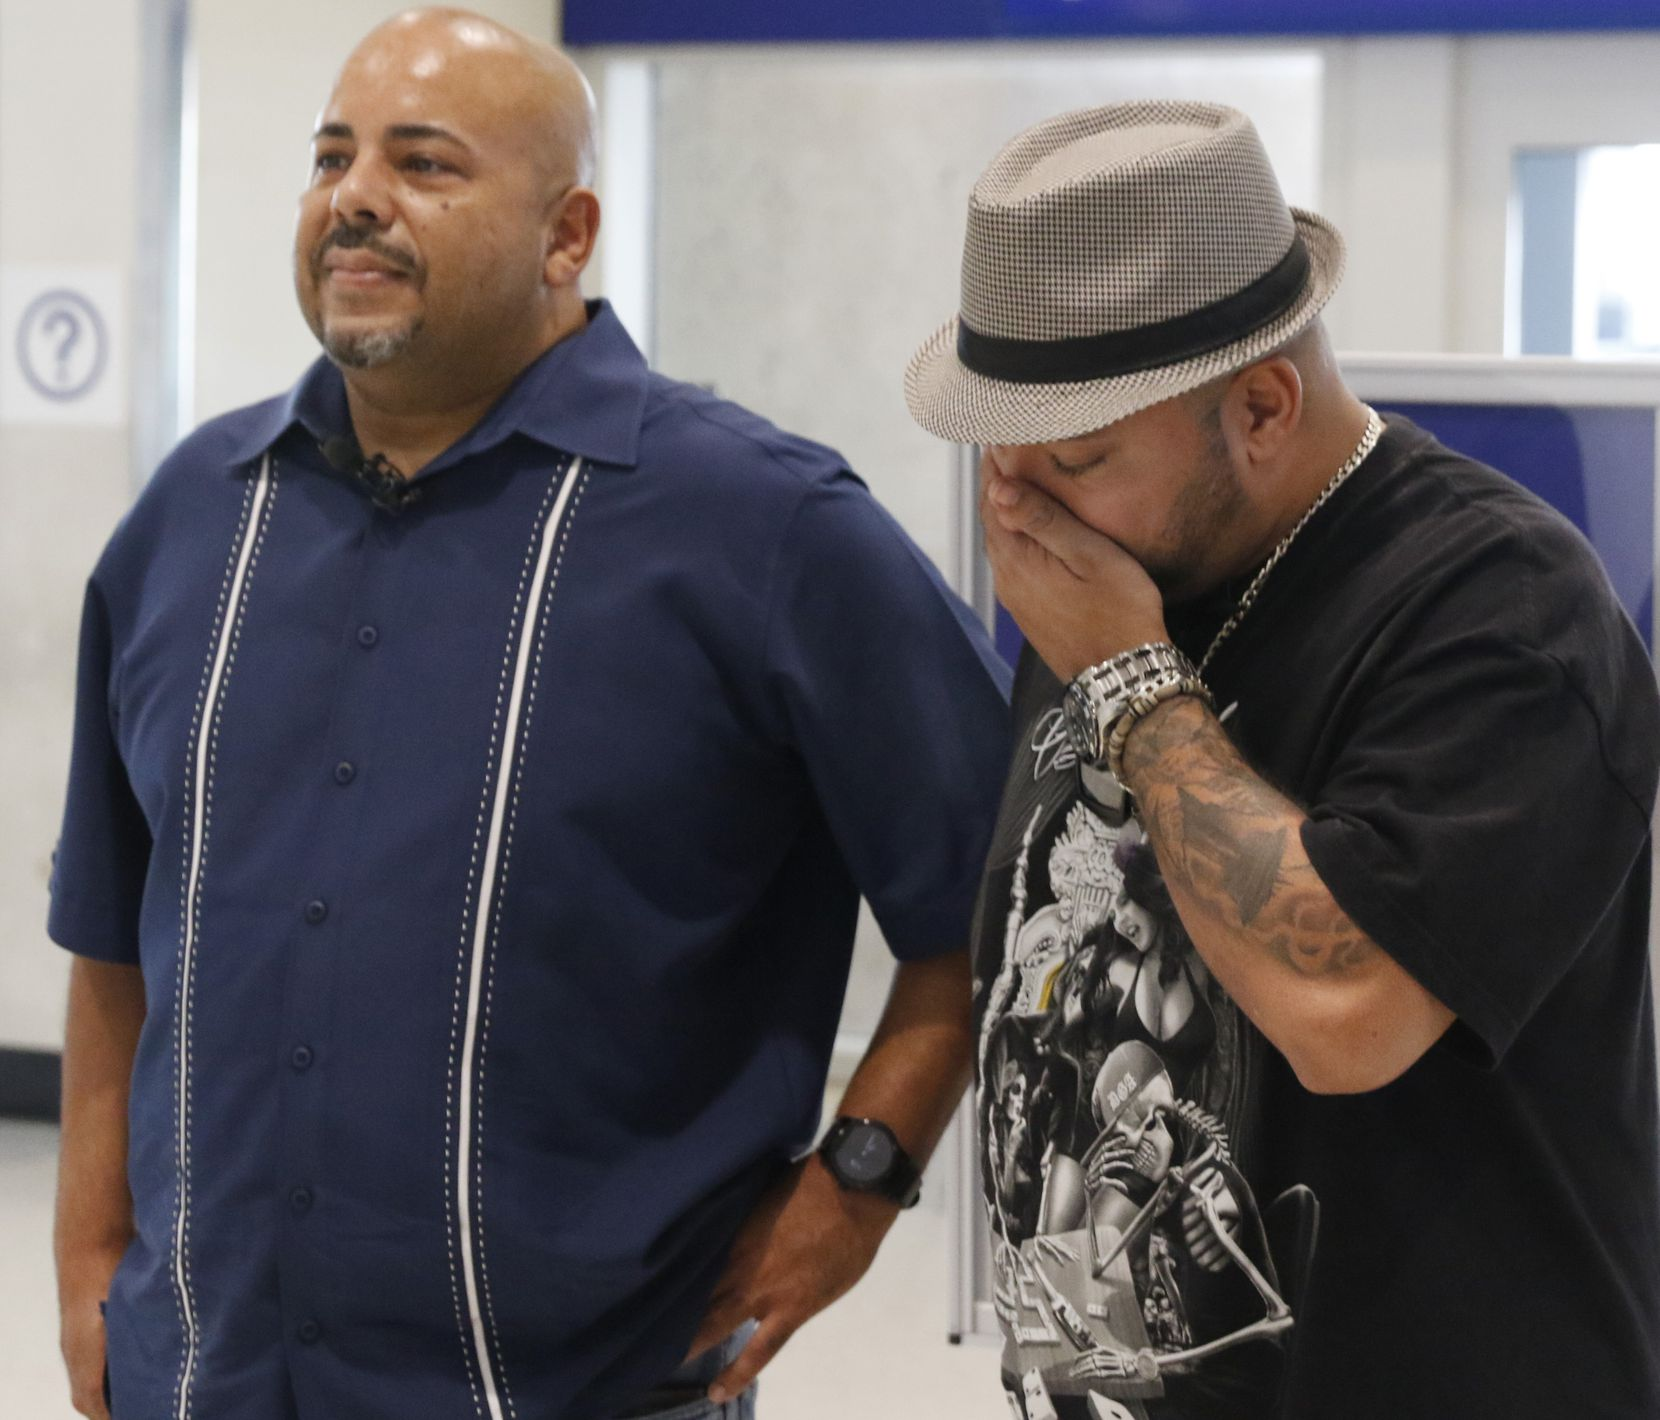 Anthony Wiggs (left) and Raymond Ramirez wait to meet their biological mother, Elsie Ramirez, for the first time at DFW Airport.